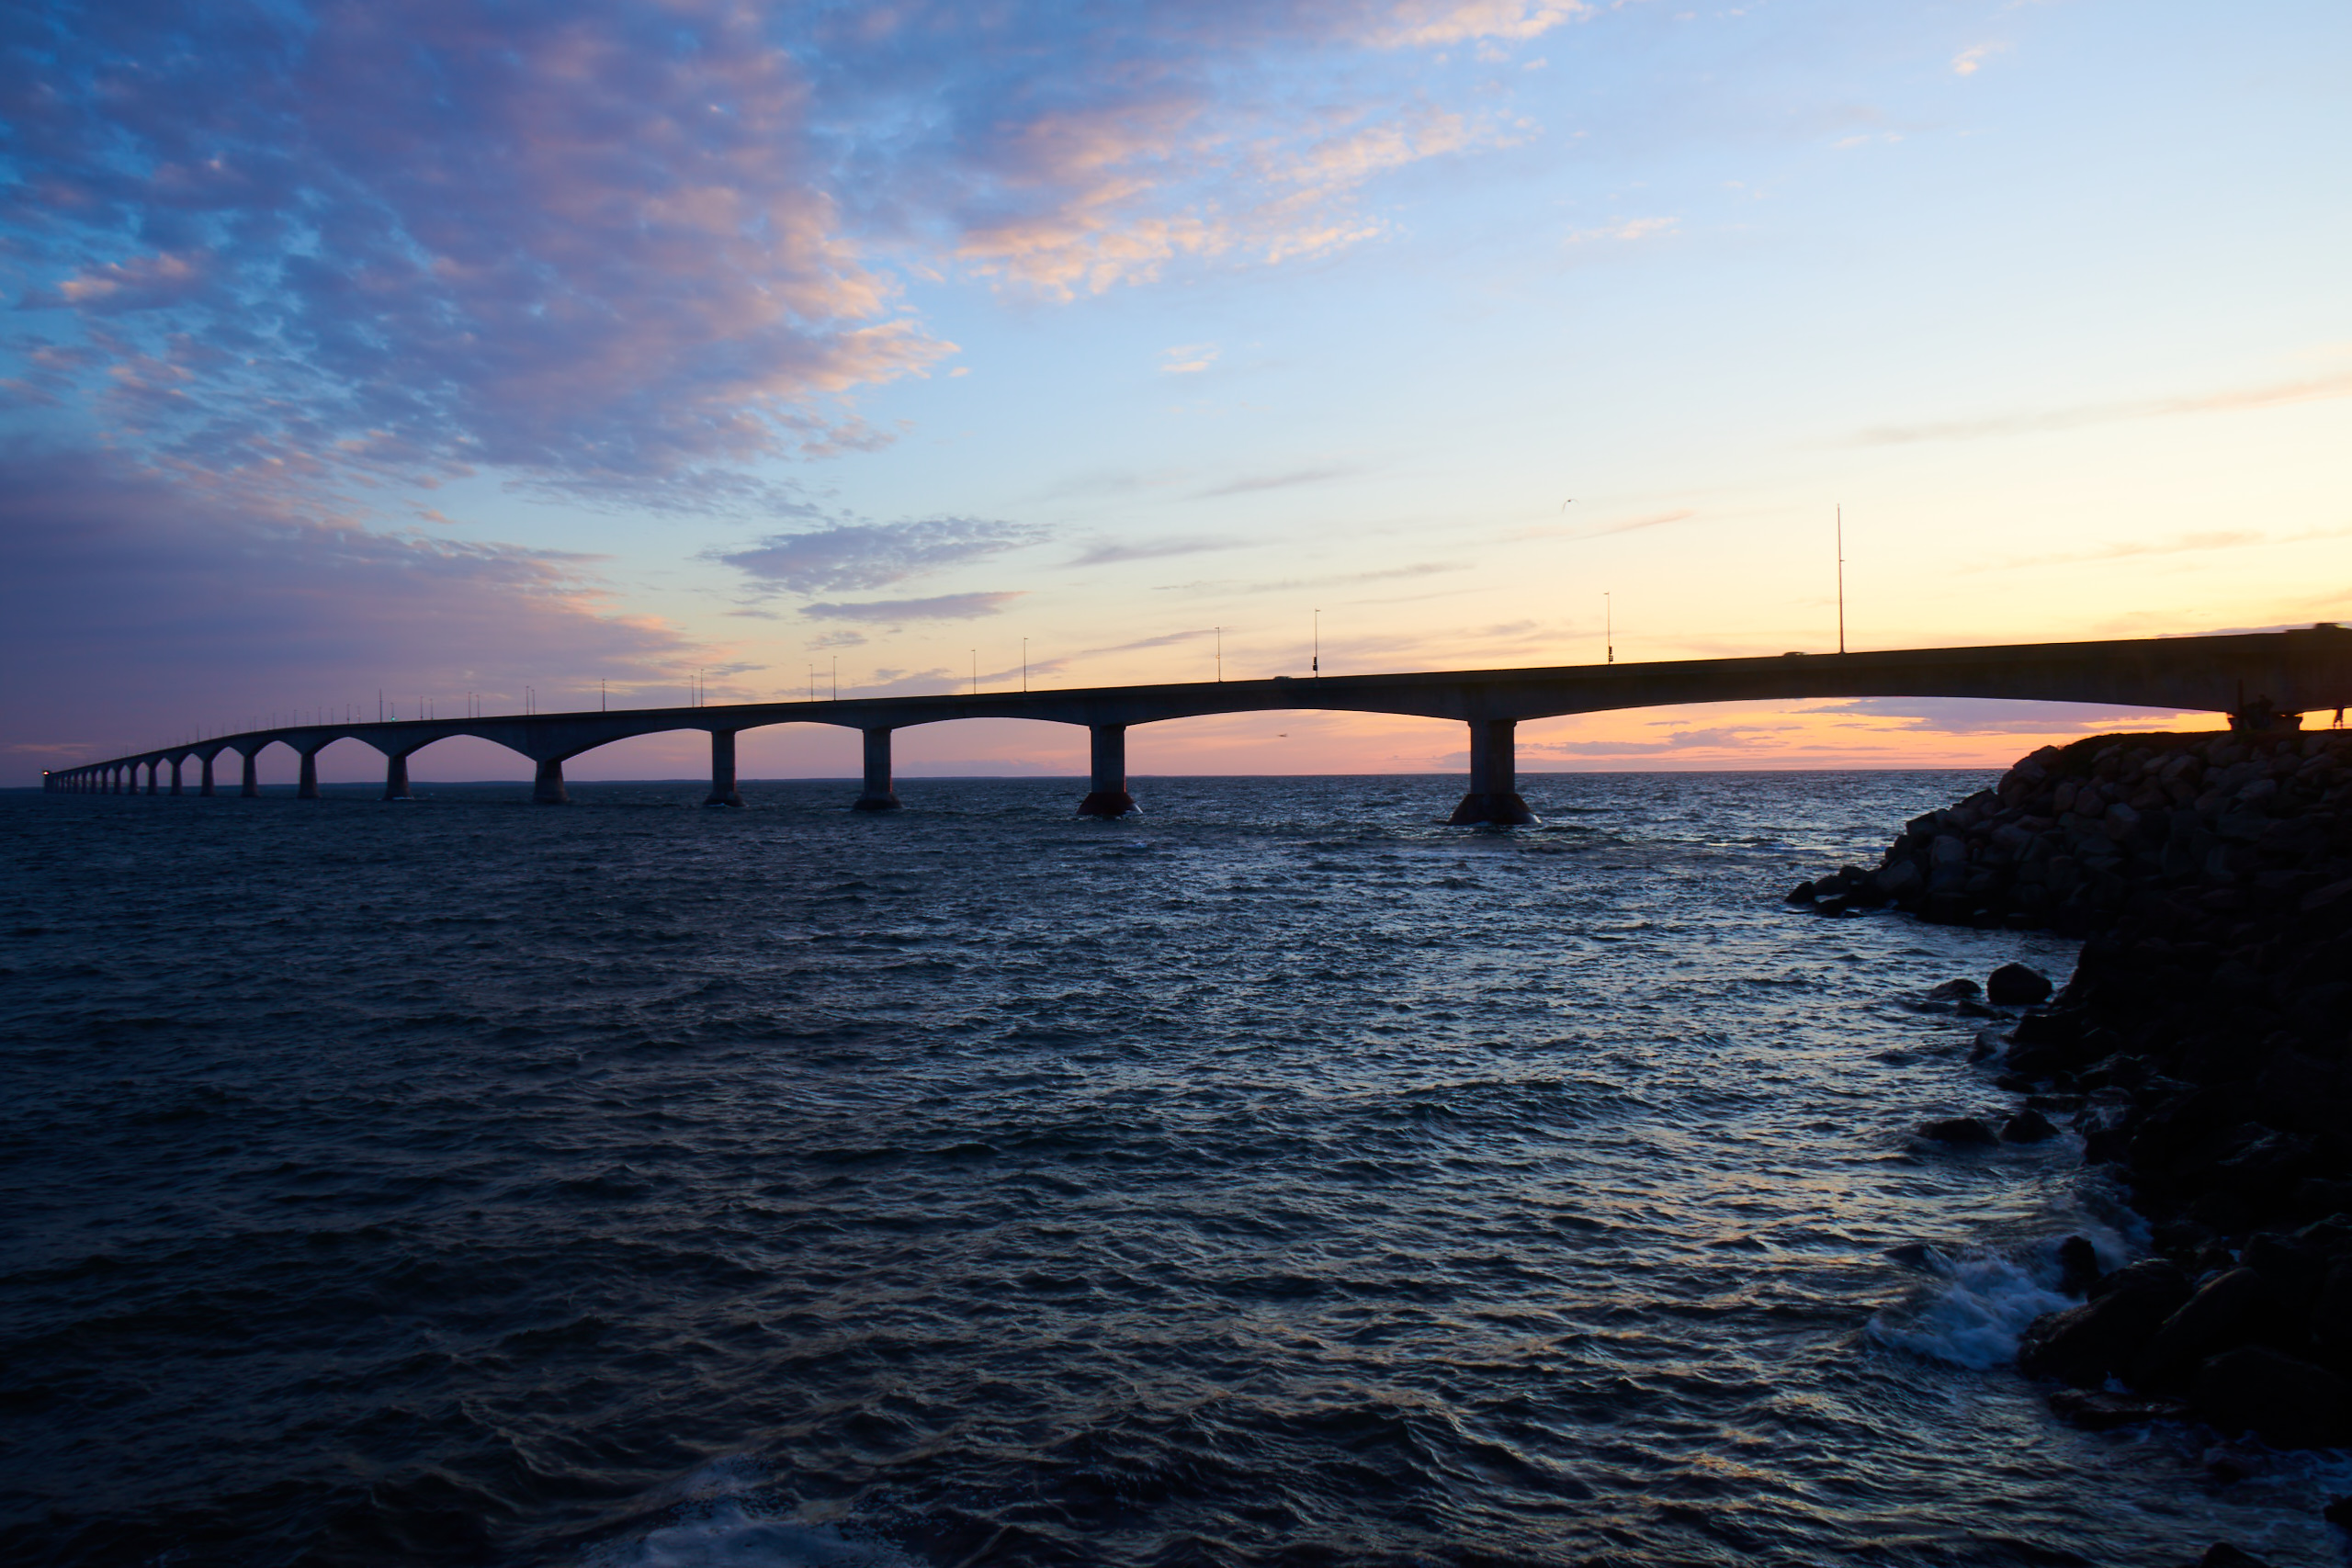 Sunset on the Other Side of Confederation Bridge